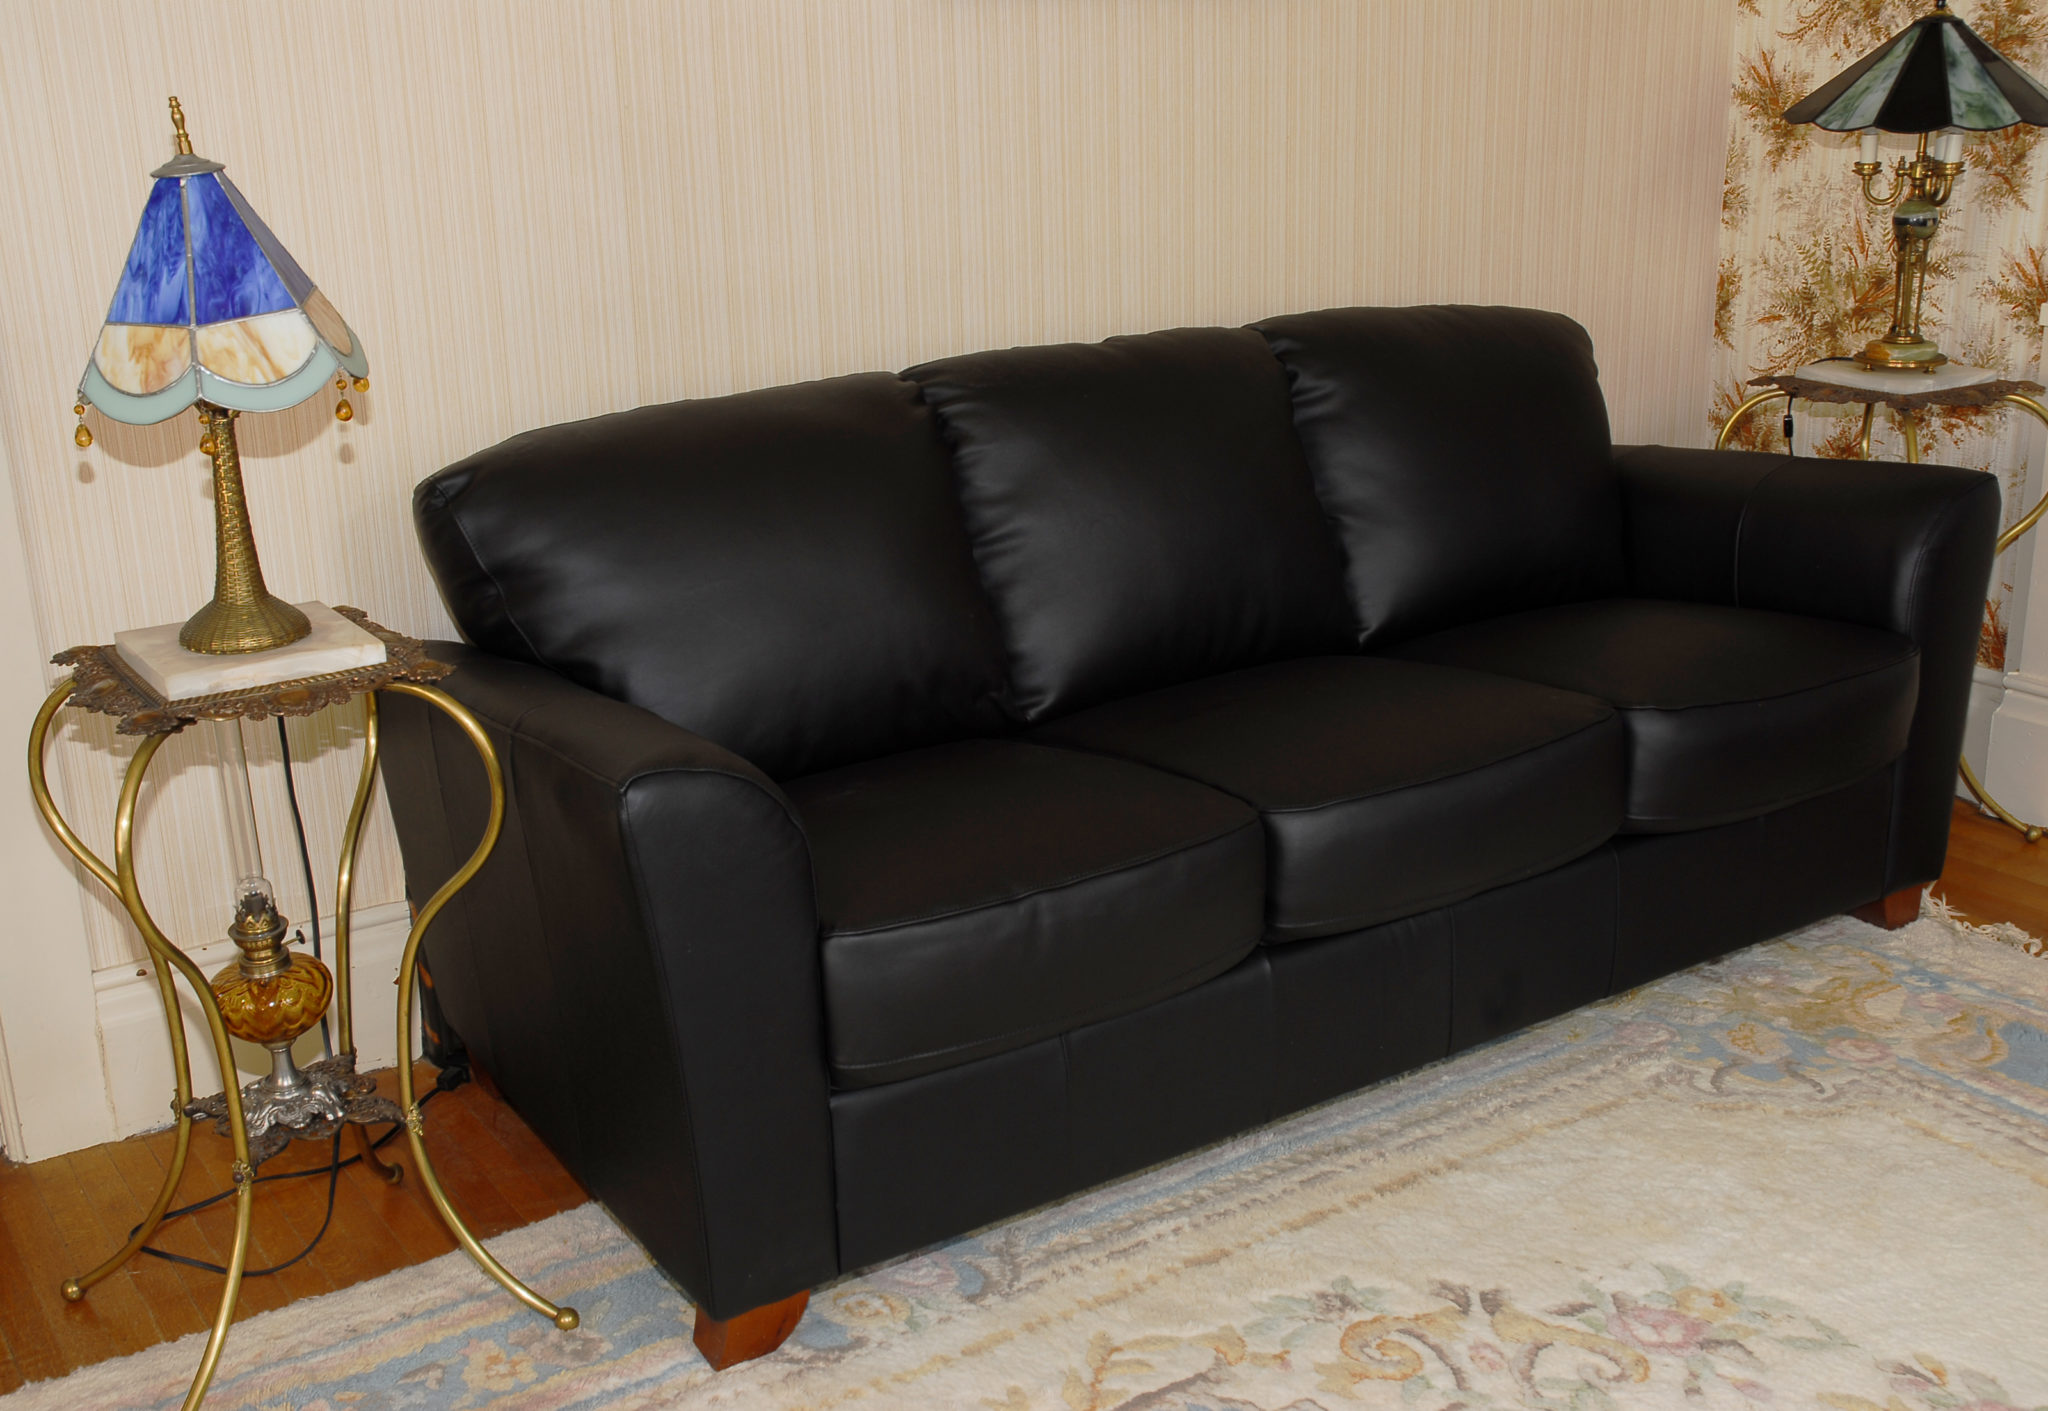 homemade leather upholstery cleaning solution. Black Bedroom Furniture Sets. Home Design Ideas